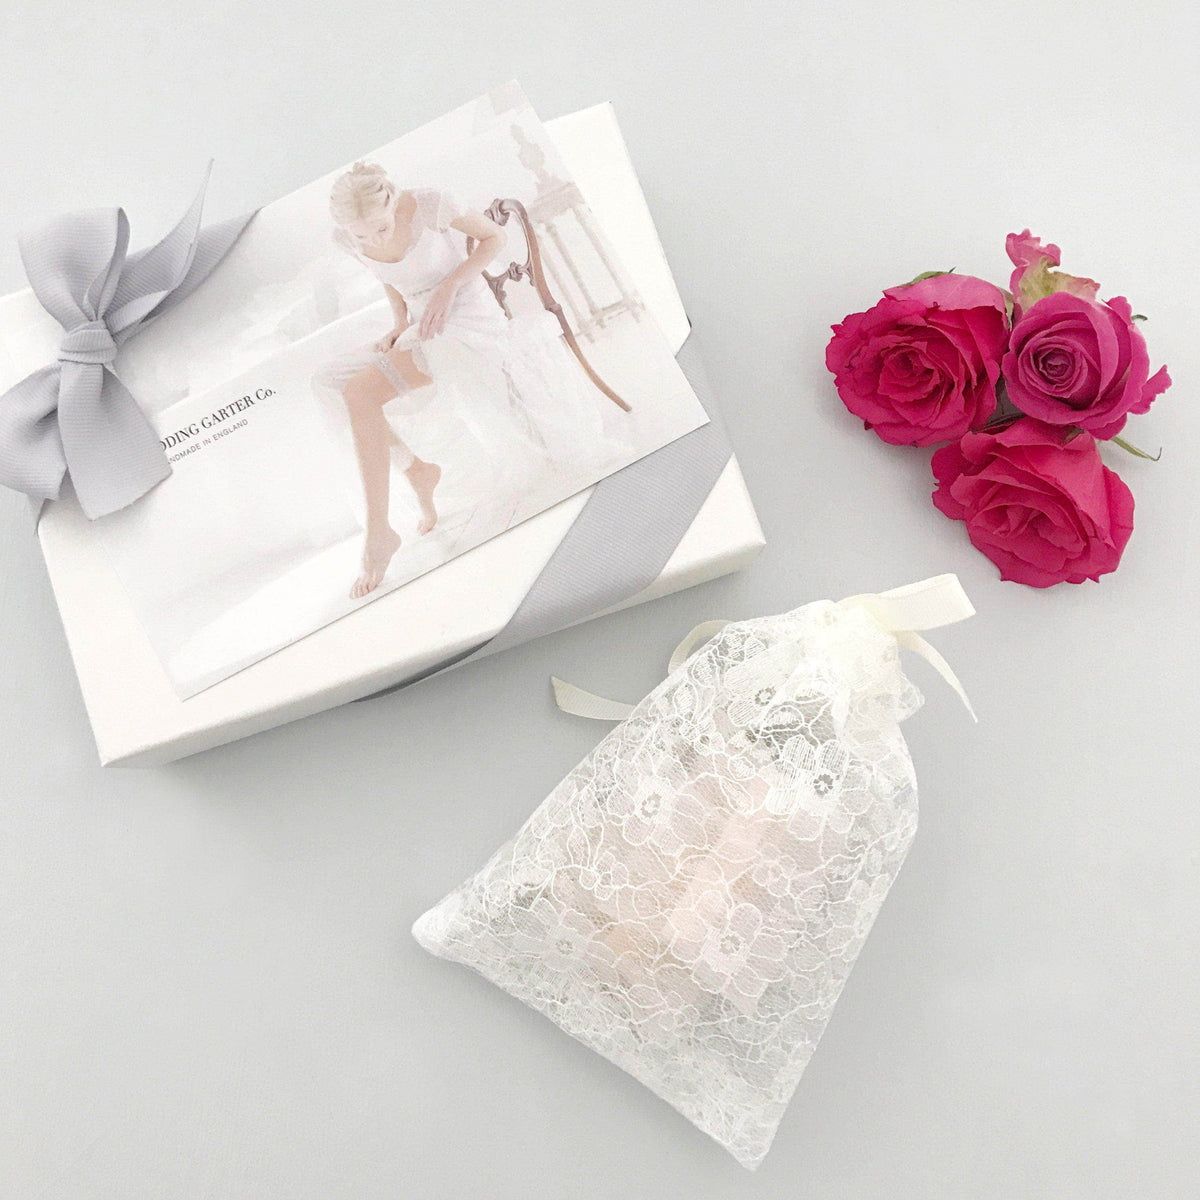 Wedding Garter Champagne lace wedding garter with rose gold stone - 'Ava'